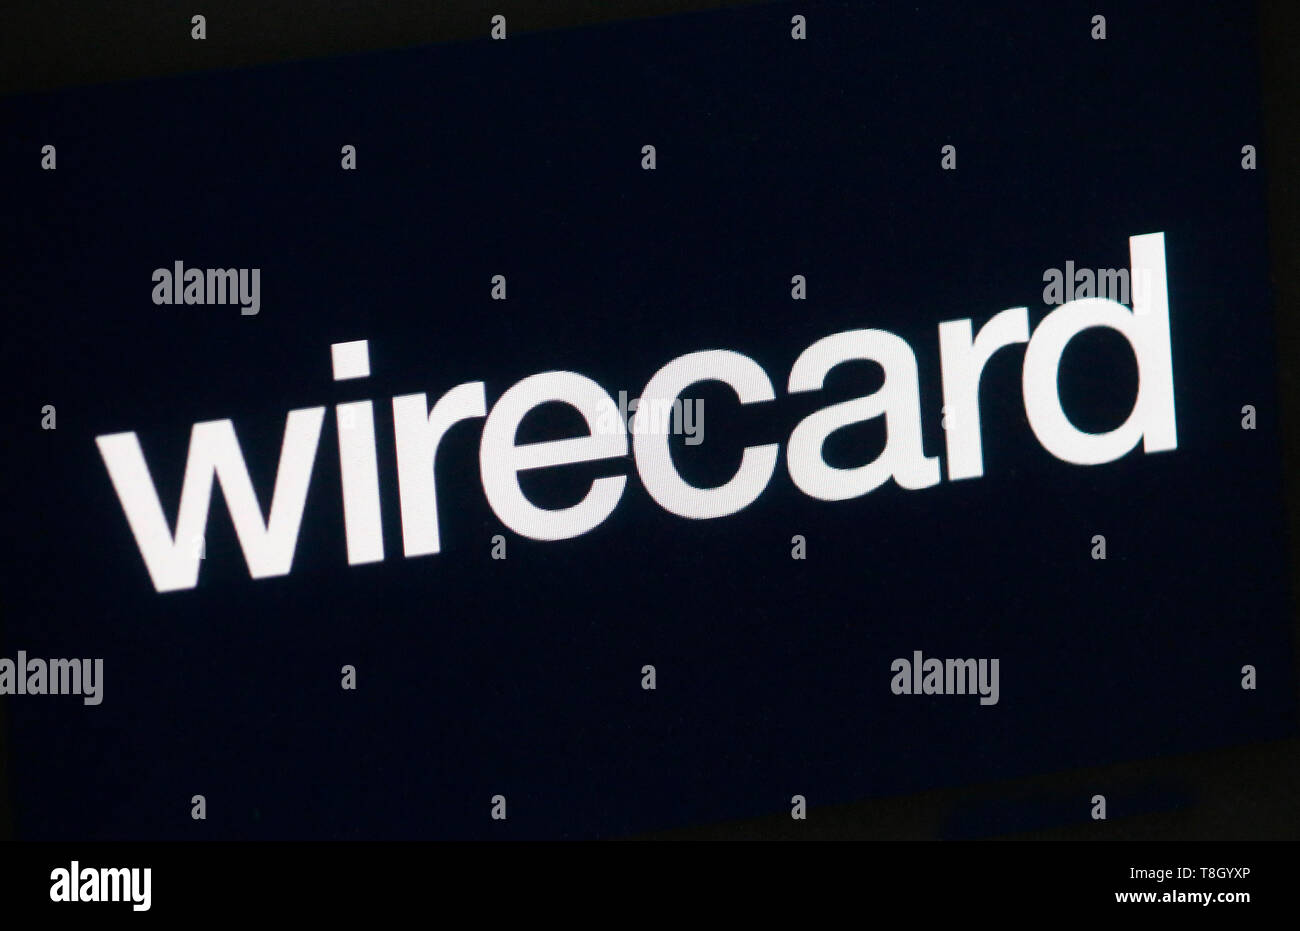 the logo of the brand 'Wirecard'. - Stock Image